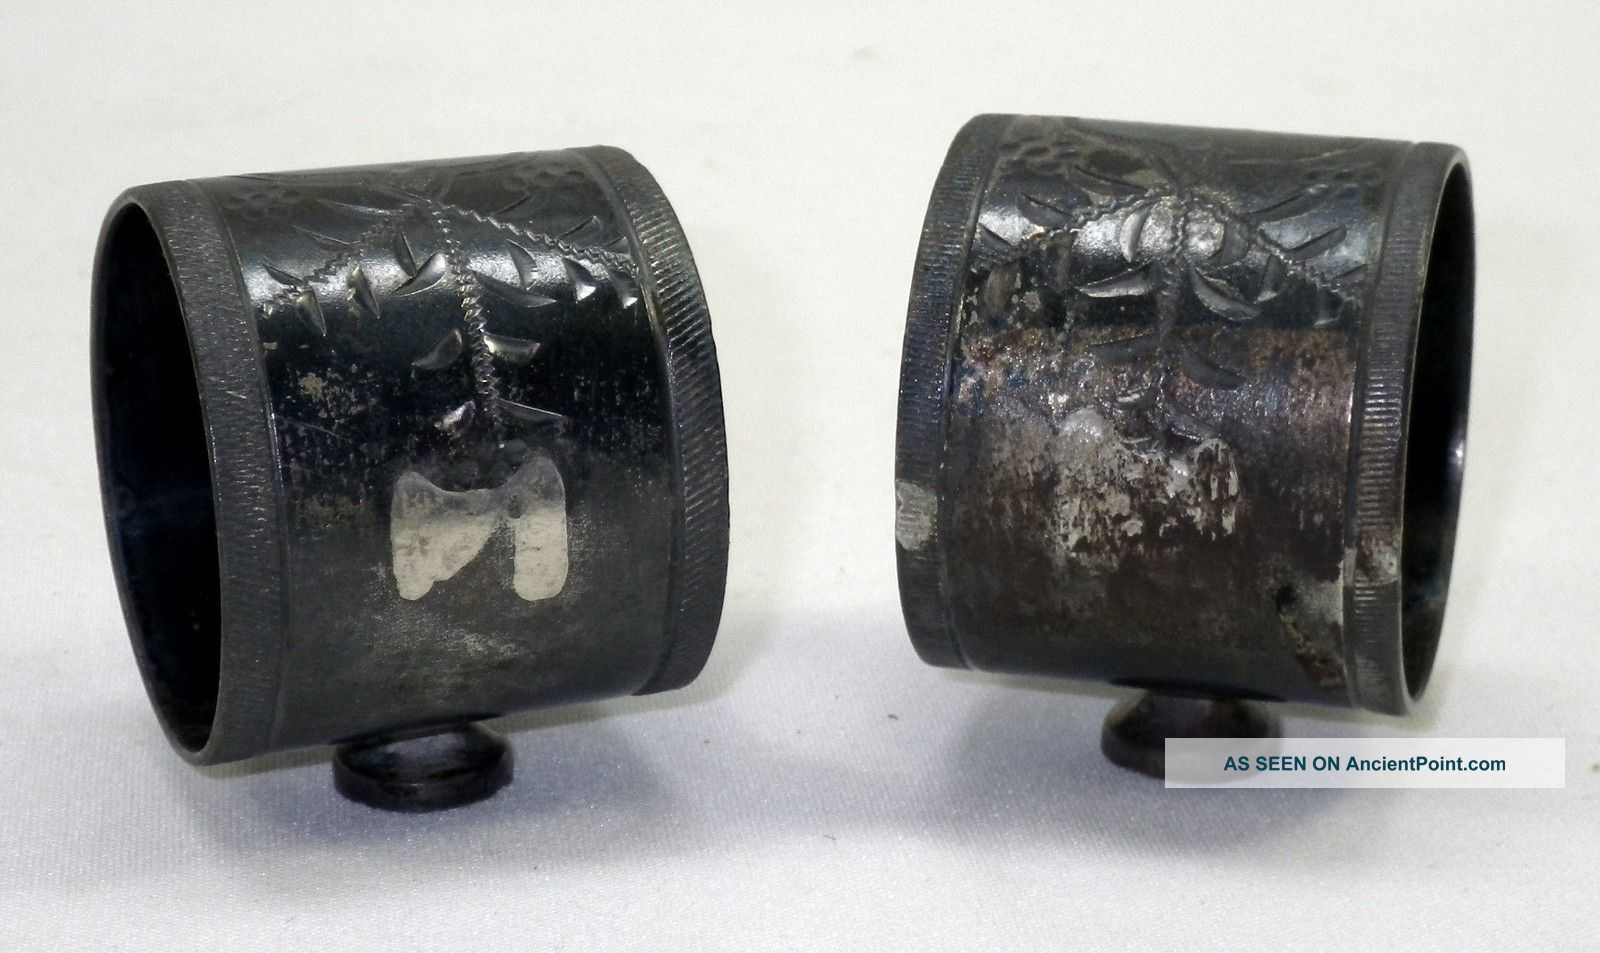 Antique Set Of 2 Silverplate Engraved Ornate Design Footed Napkin Rings Holders Napkin Rings & Clips photo